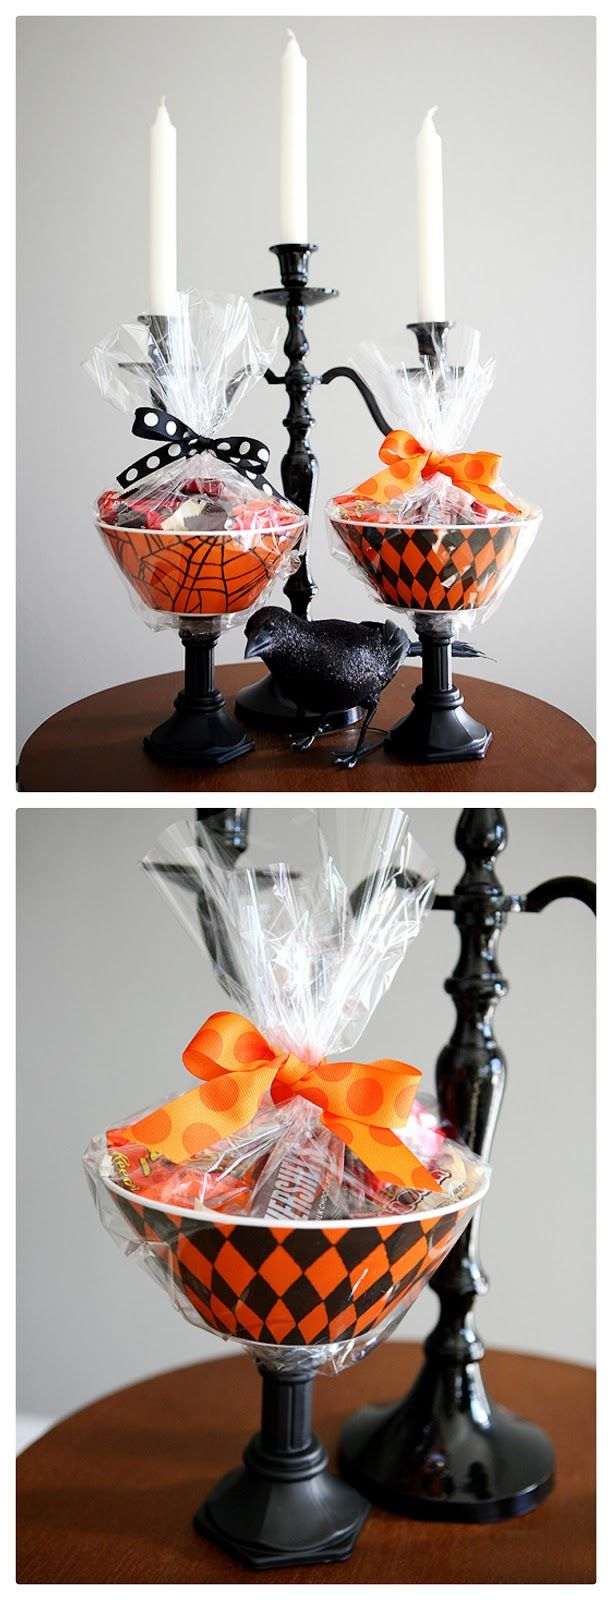 535 best Halloween - My favorite! images on Pinterest Halloween - How To Make Halloween Decorations